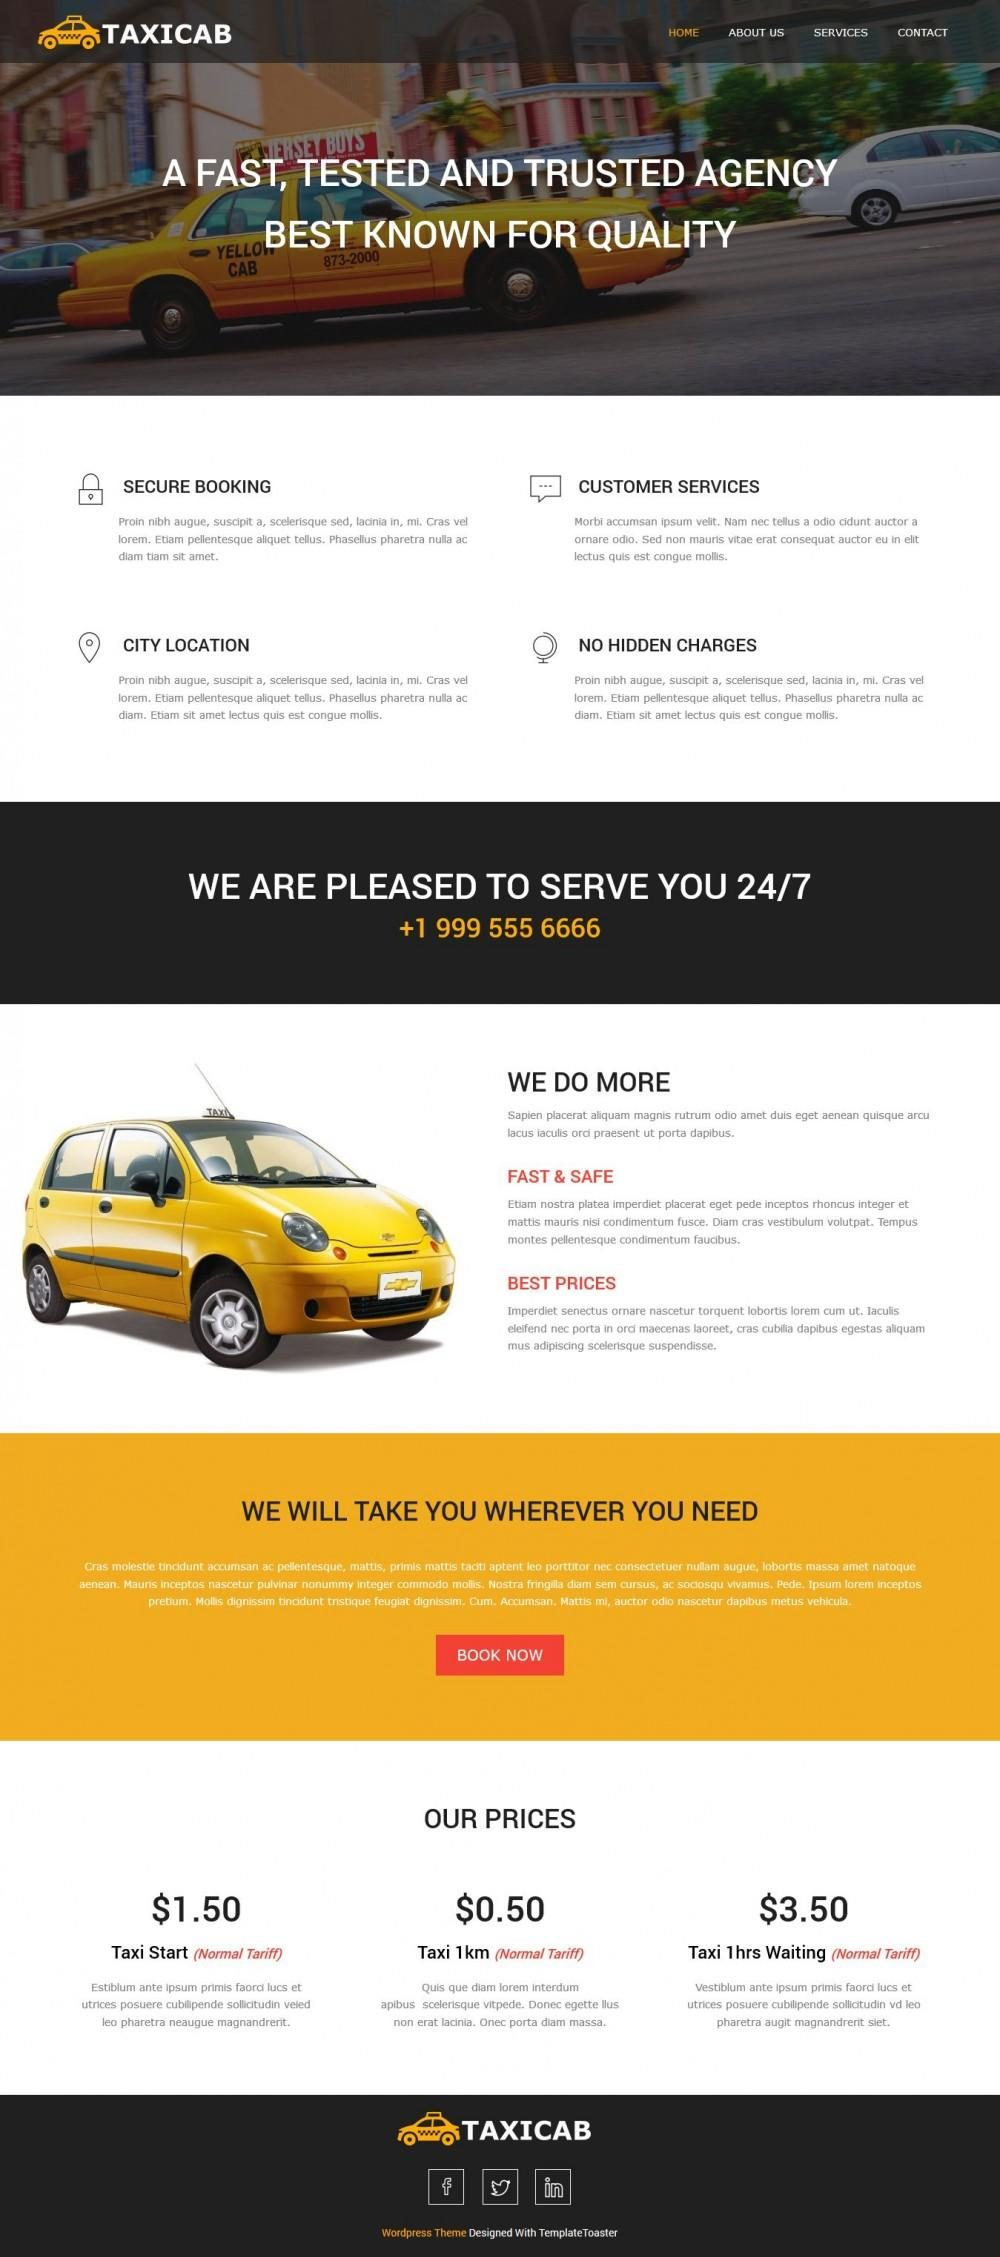 Taxi-Cab - Taxi Company And Taxi Firm Free WordPress Theme